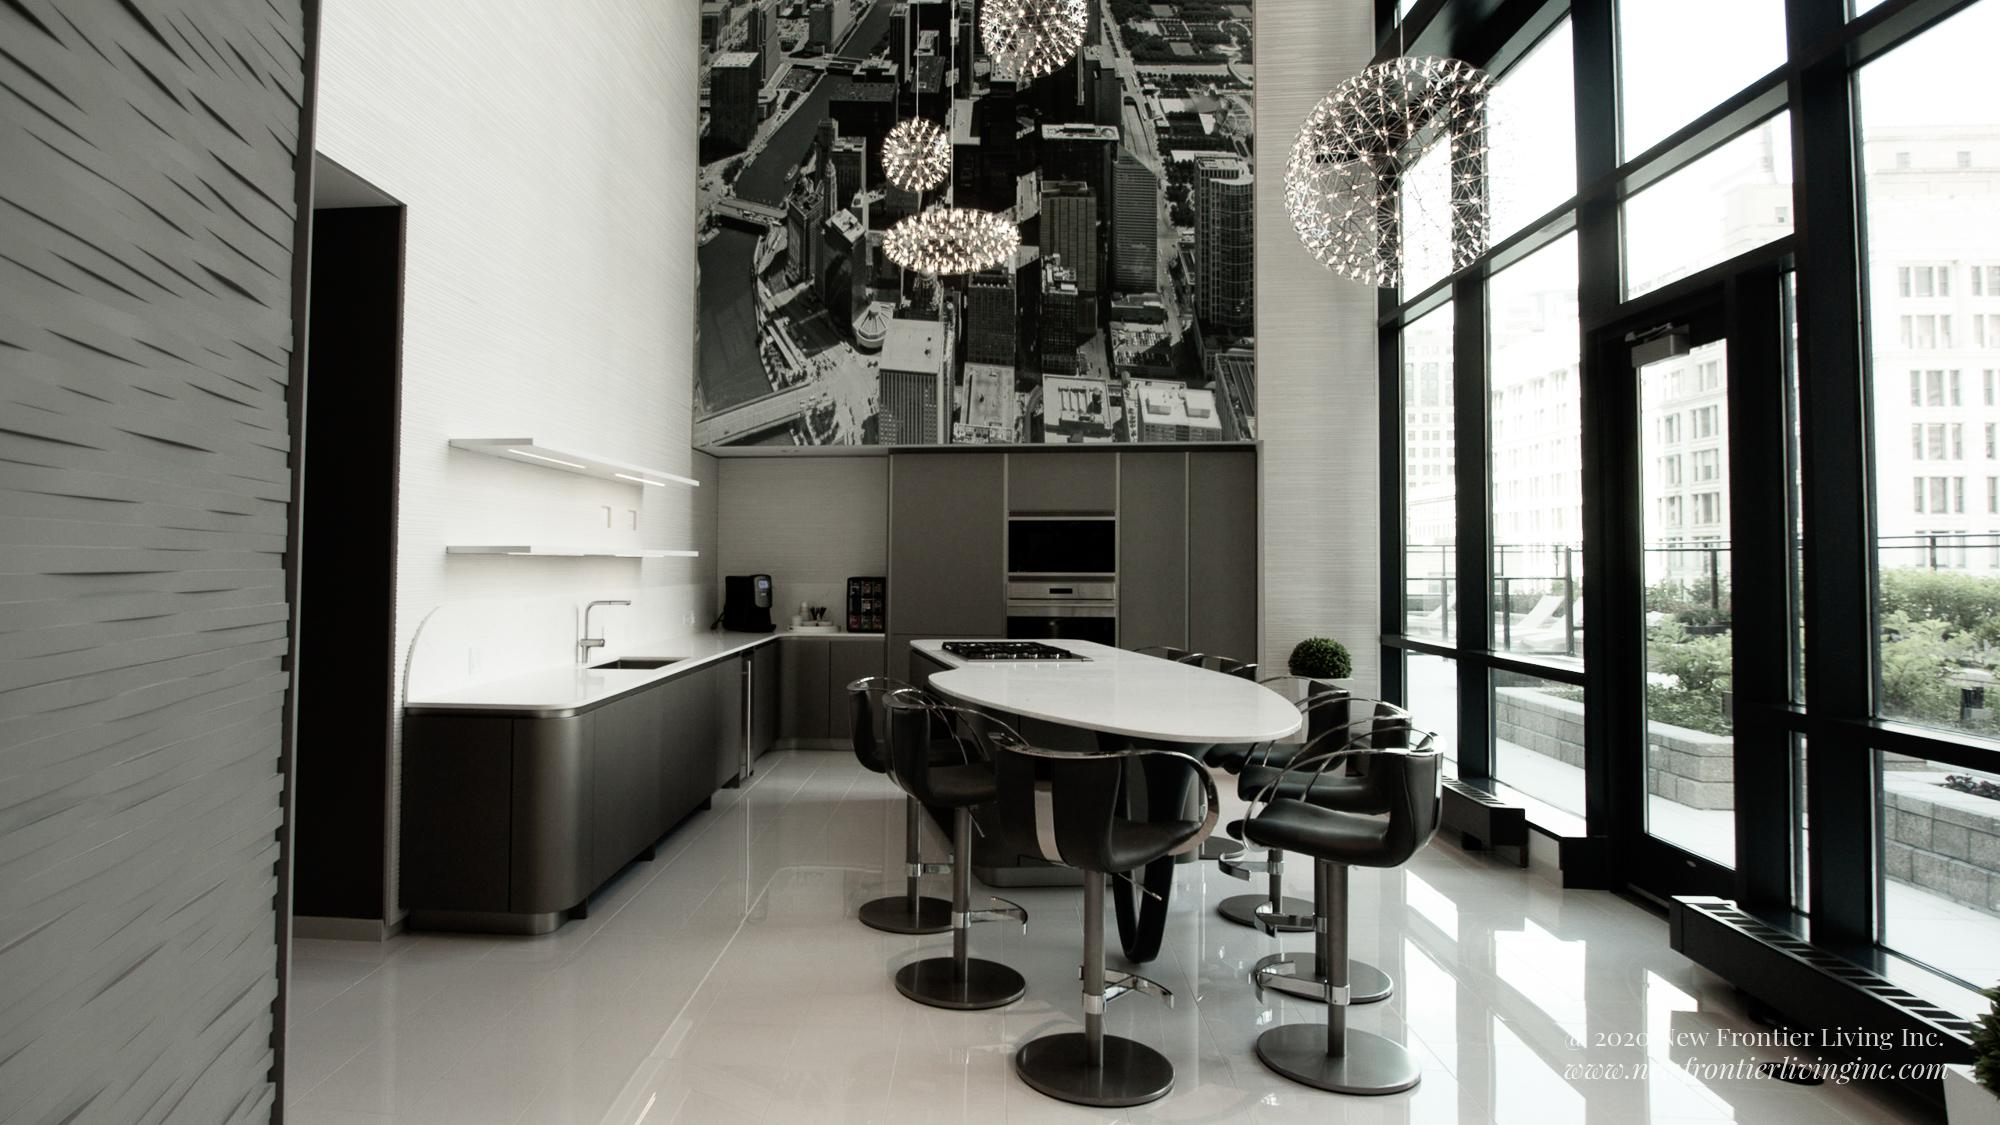 Large view of a black kitchen with white countertops and island, hight ceiling, patio on the roof on the right